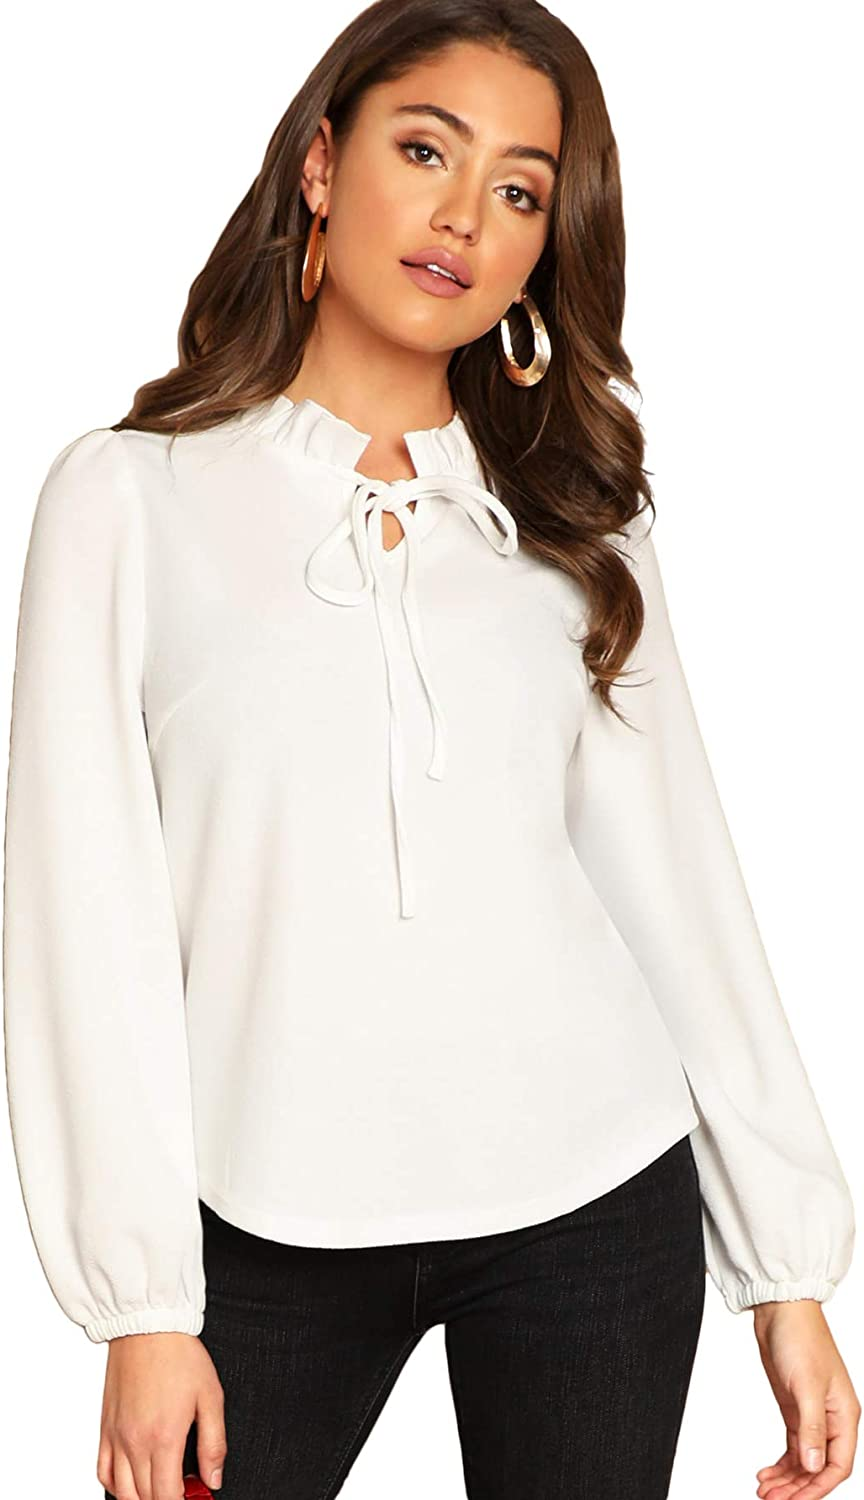 SheIn Women's Long Sleeve Front Bow Tie Ruffle Collar Elegant Blouse Shirt Tops